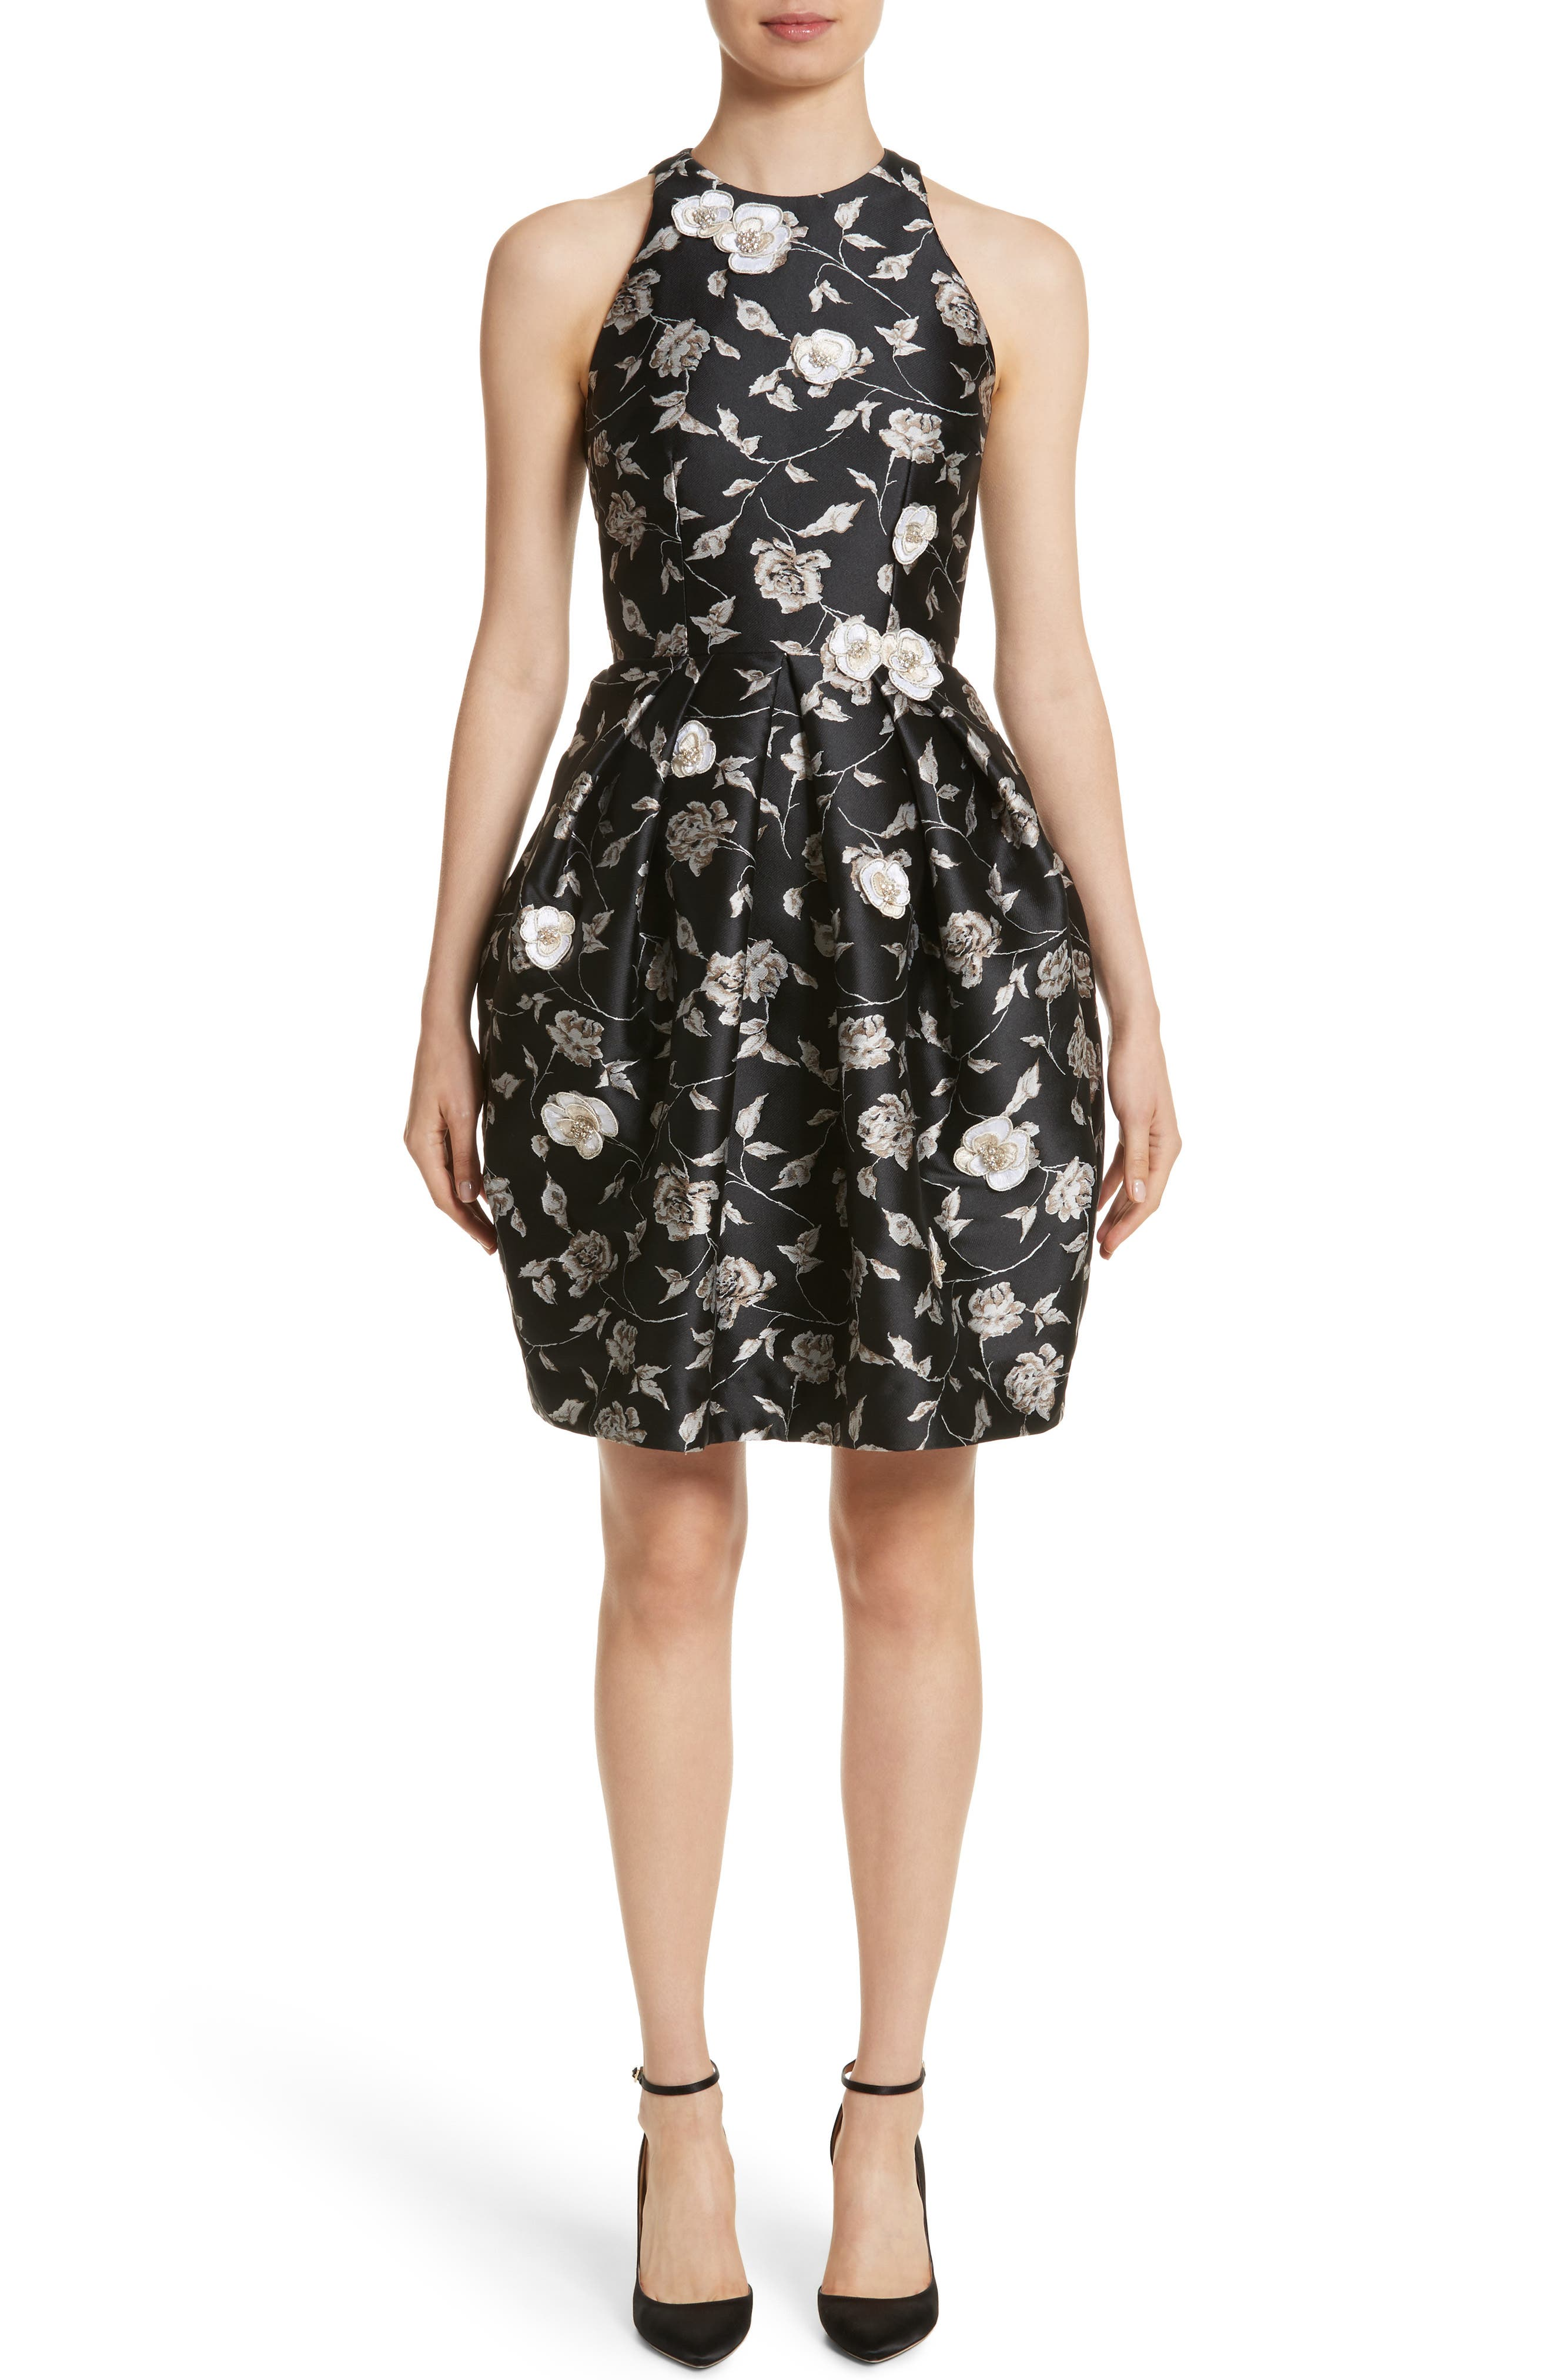 Carmen Marc Valvo Embellished Appliqué Floral Jacquard Cocktail Dress,                         Main,                         color, Black